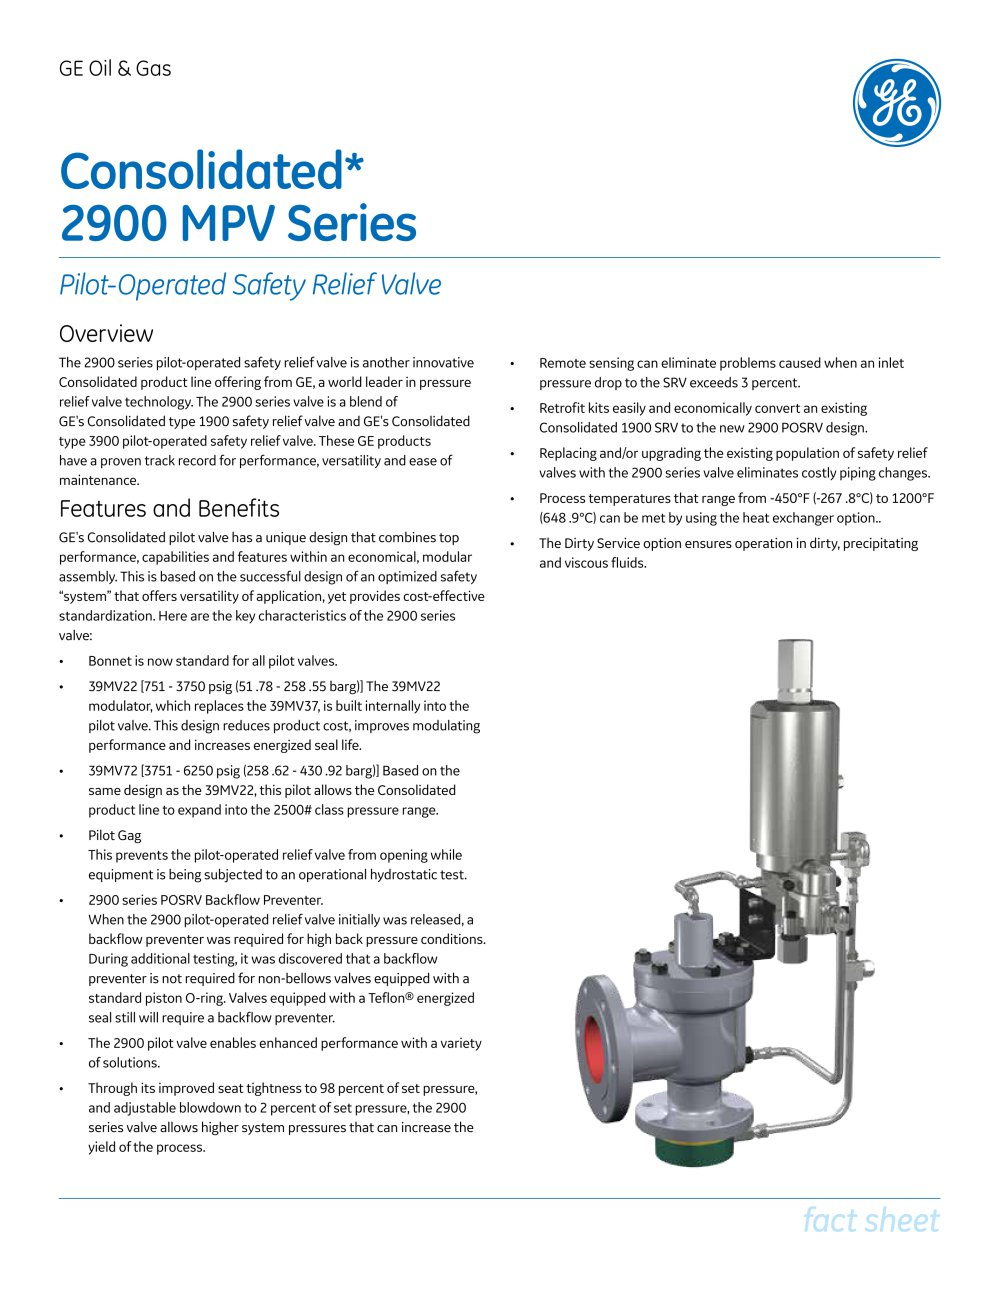 Consolidated Type 2900 Mpv Modular Pilot Operated Safety Relief Valve 1 4 Pages